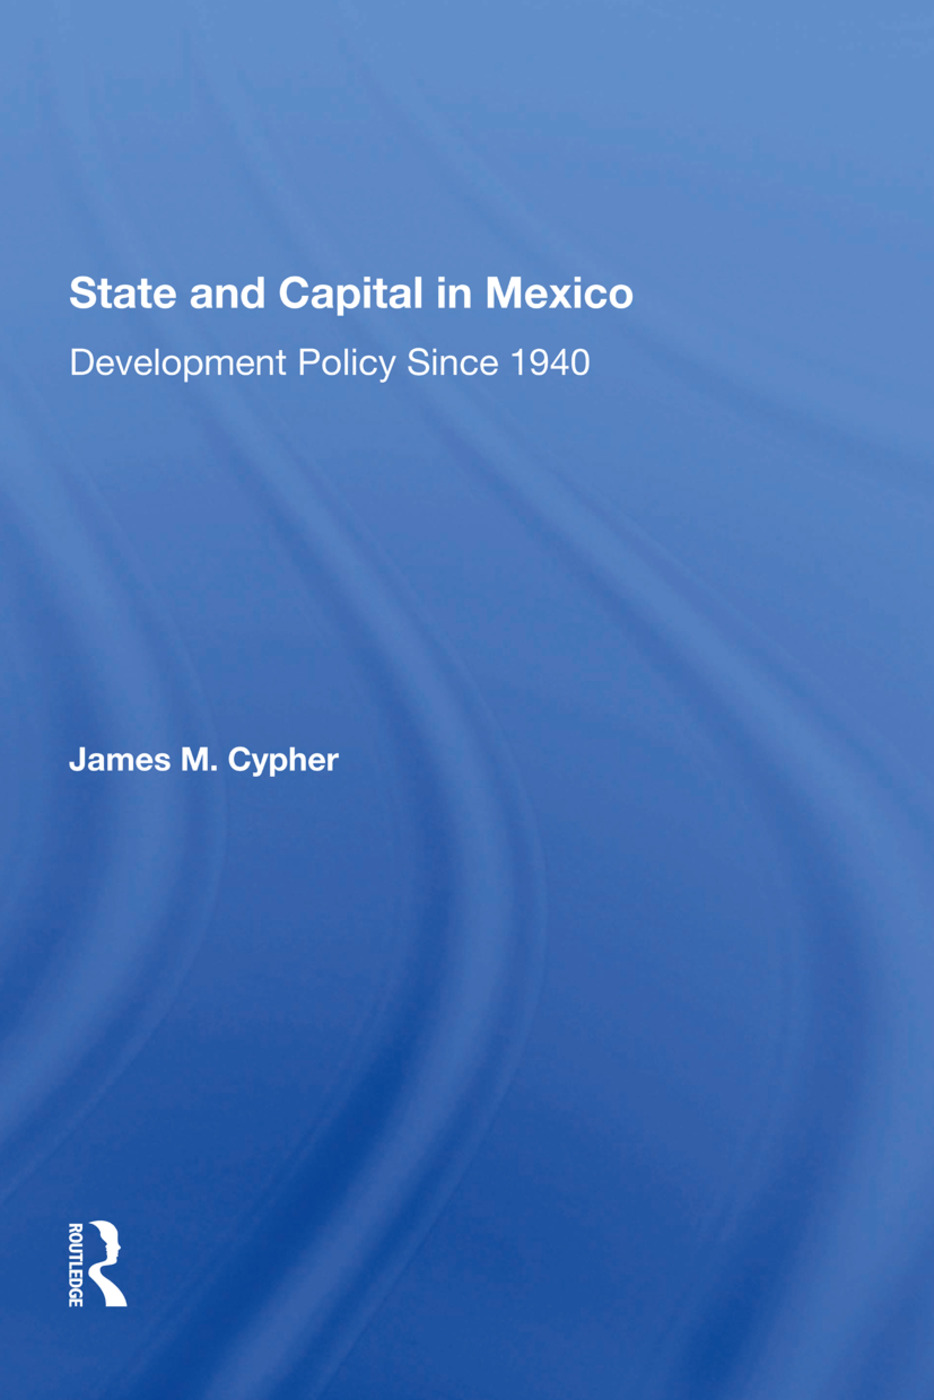 State And Capital In Mexico: Development Policy Since 1940 book cover